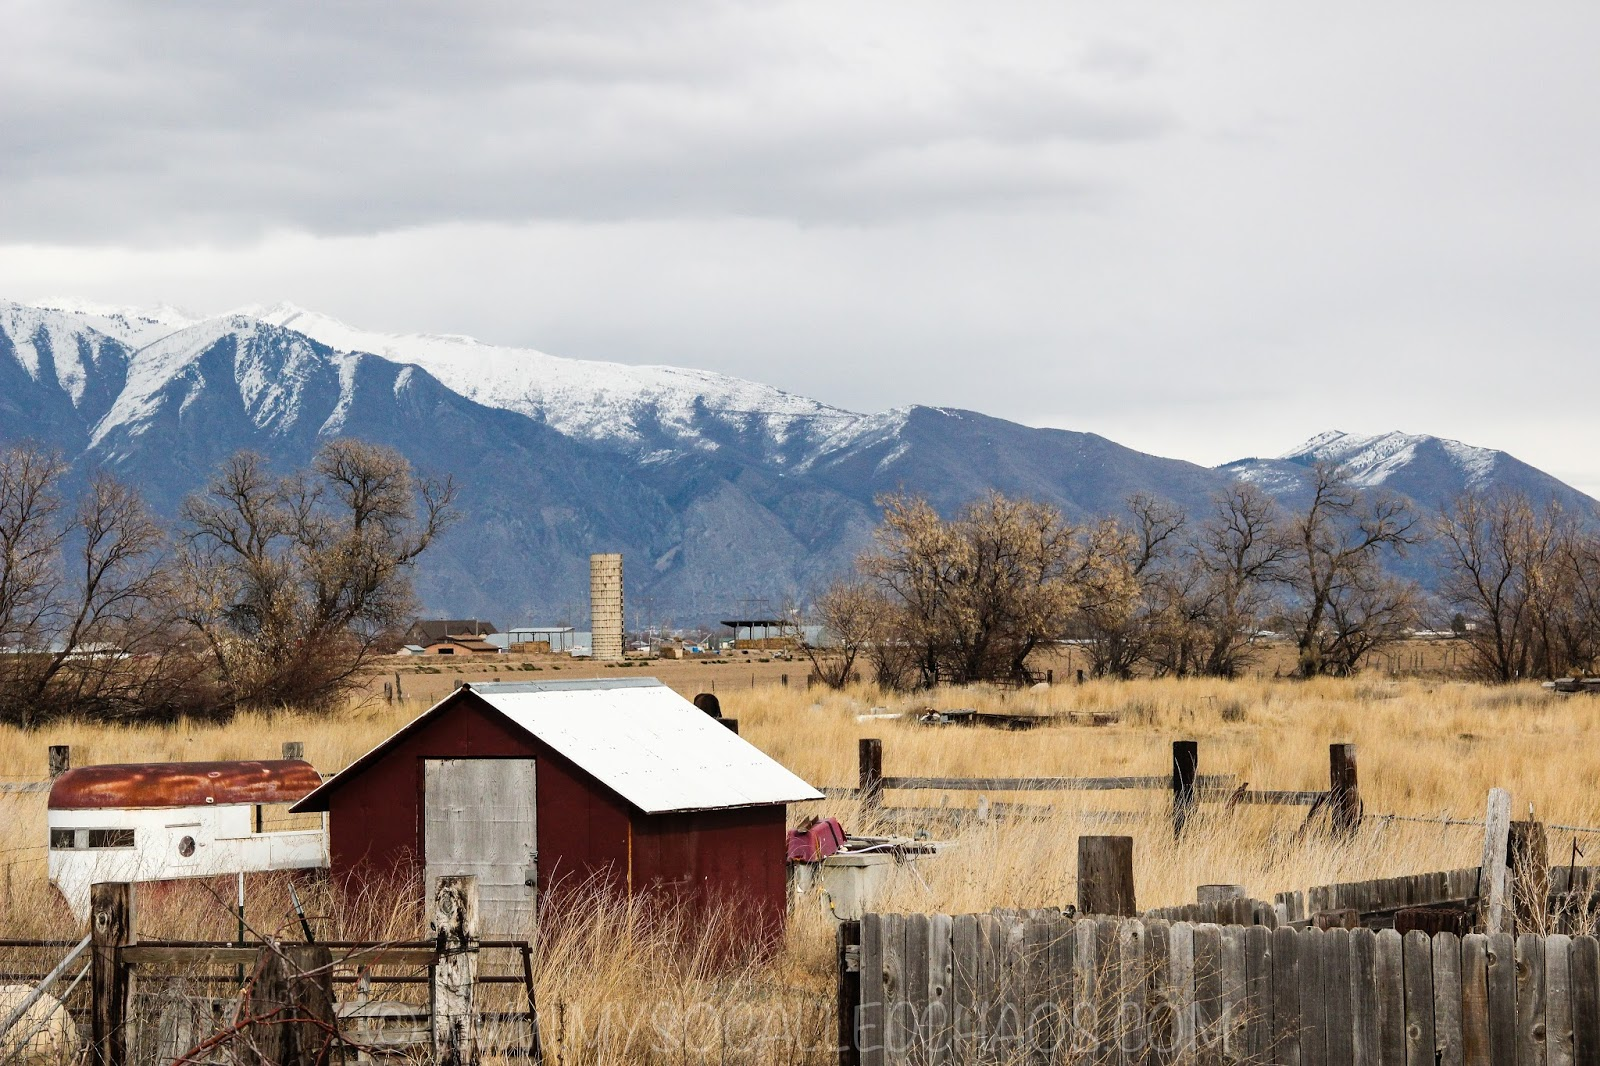 Photography: The Yard Back Home-Lakeshore Utah